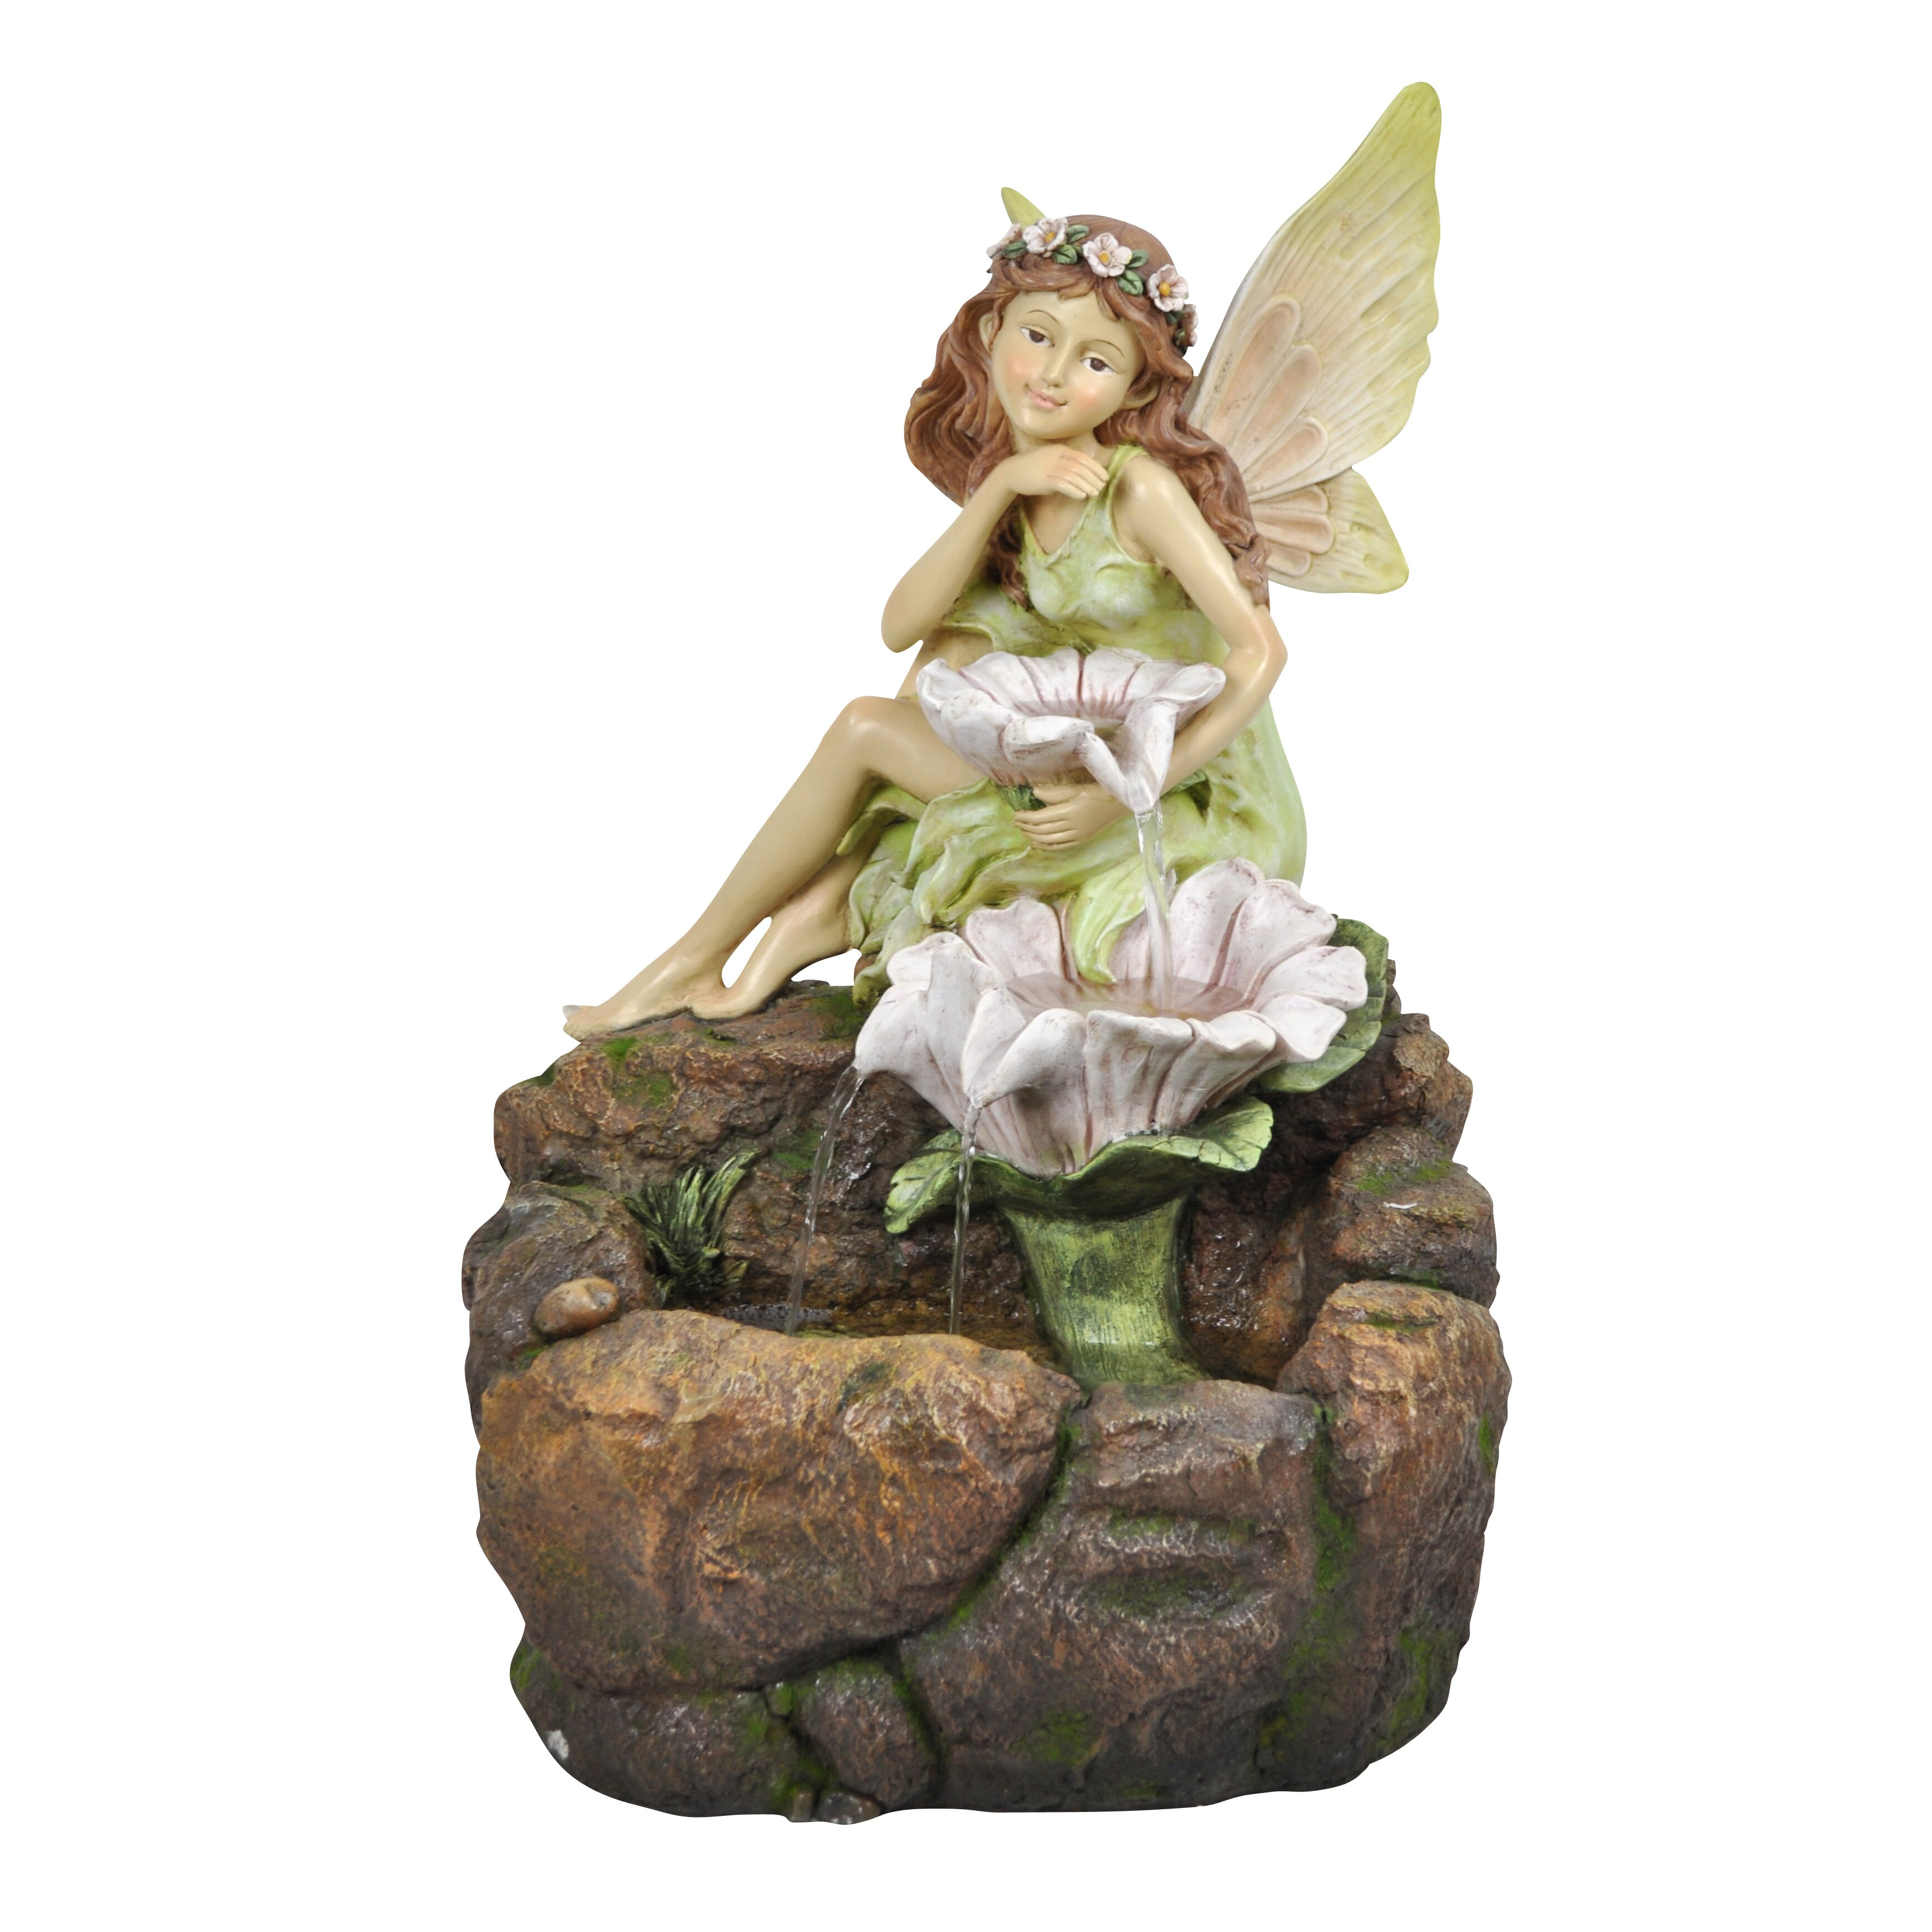 Alpine Resin Fairy and Flowers Fountain with LED Light  : Alpine Resin Fairy and Flowers Fountain with LED Light GZZ300 from www.wayfair.com size 3477 x 3477 jpeg 664kB